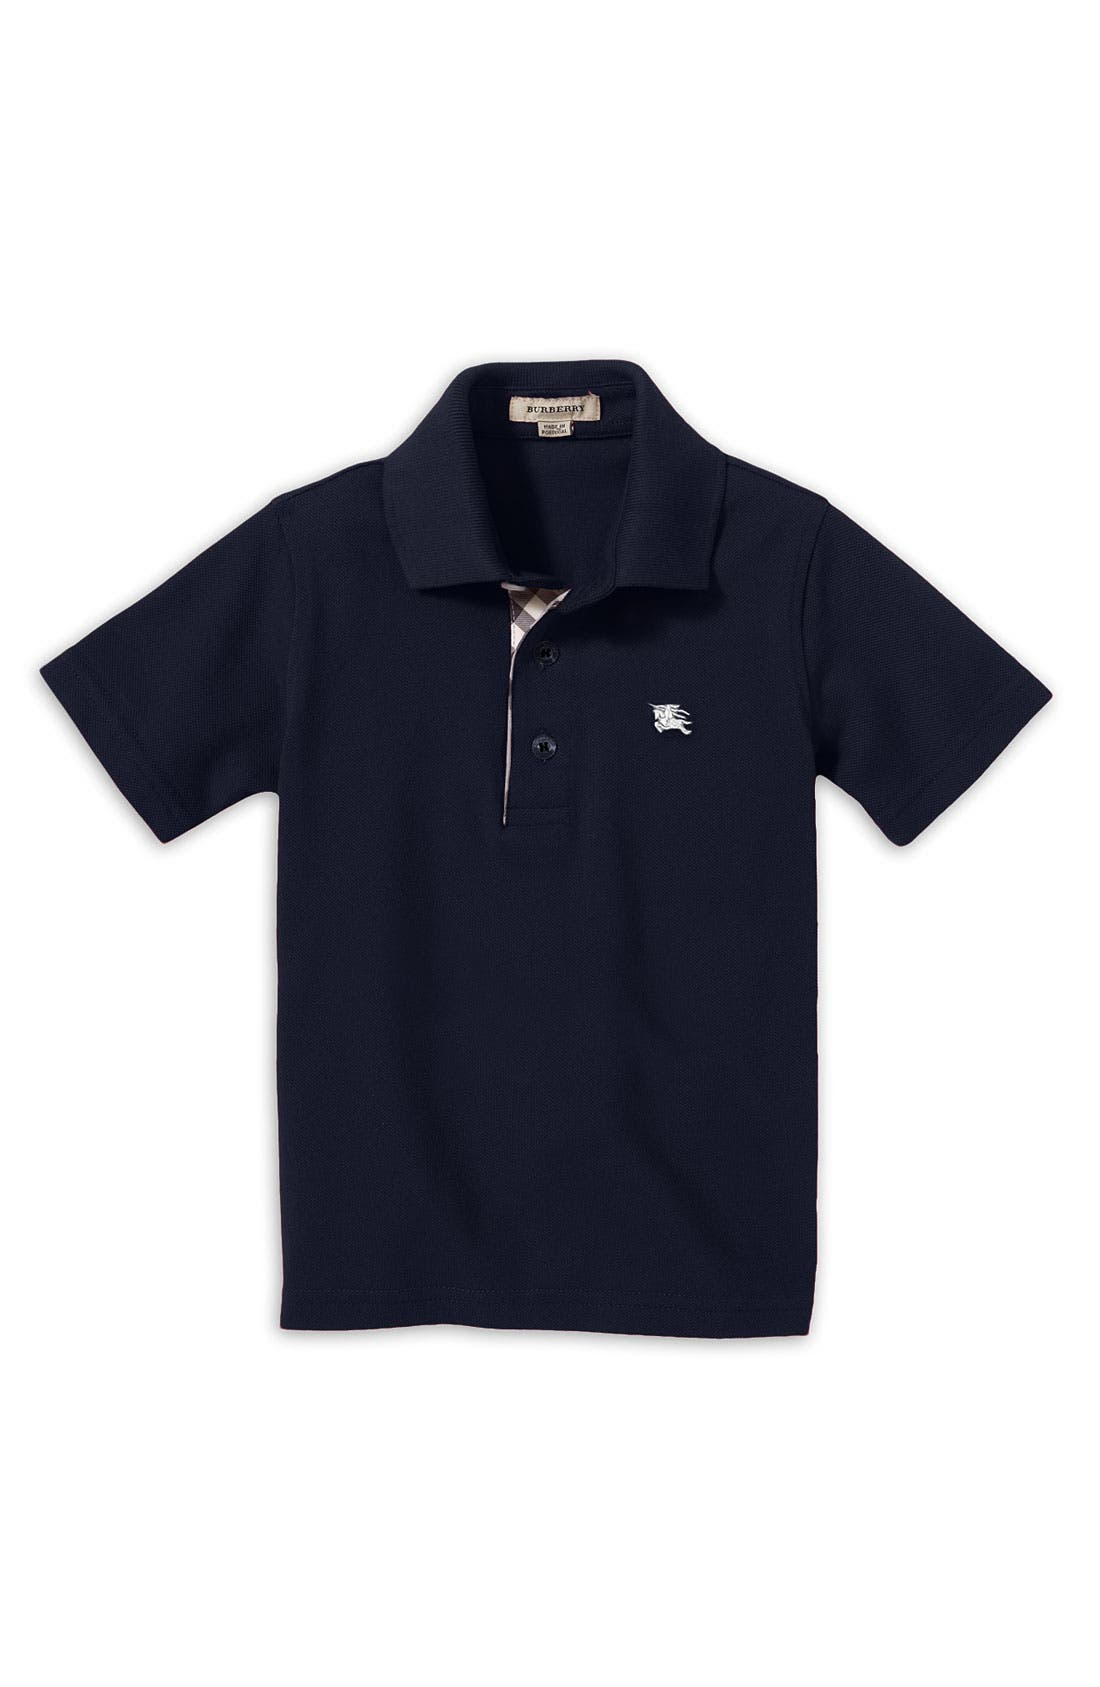 Main Image - Burberry Short Sleeve Polo Shirt (Big Boys)